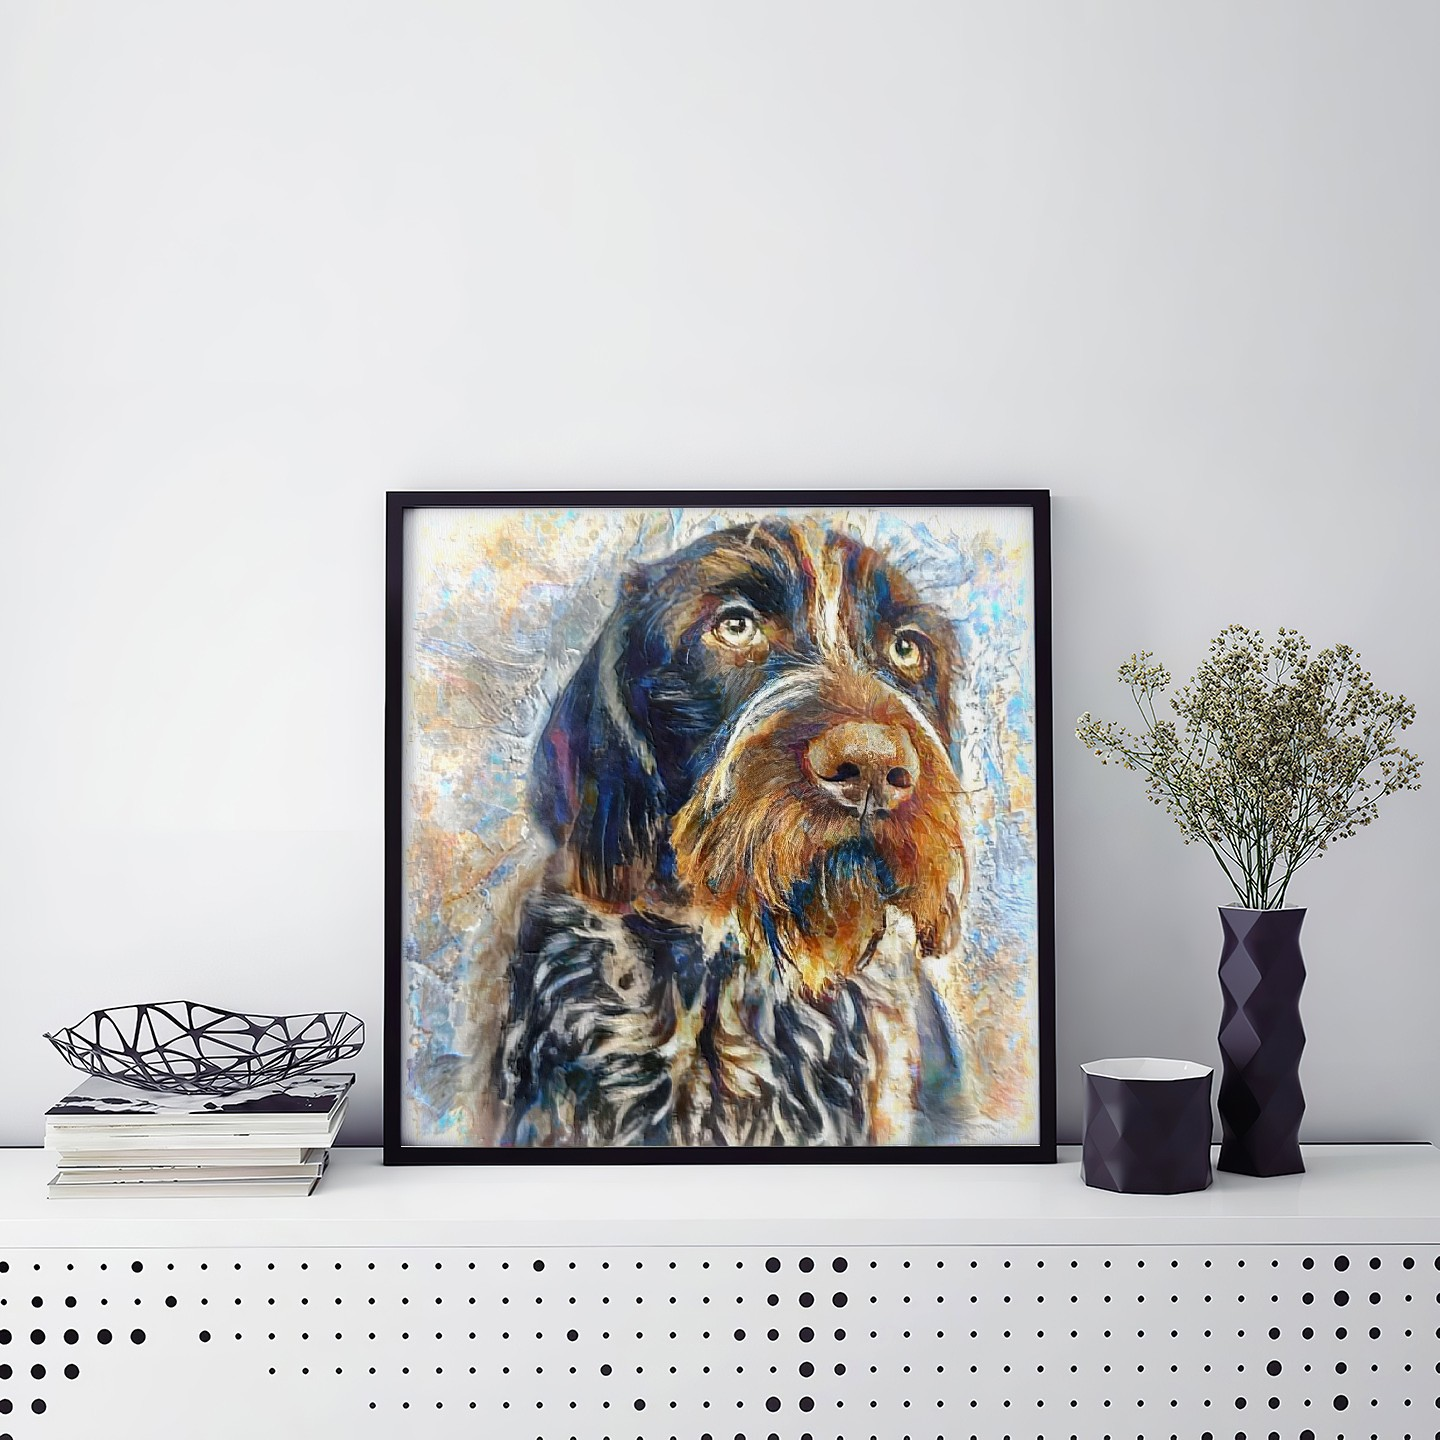 Spirit vs Information - One of a kind pet portraits made to order